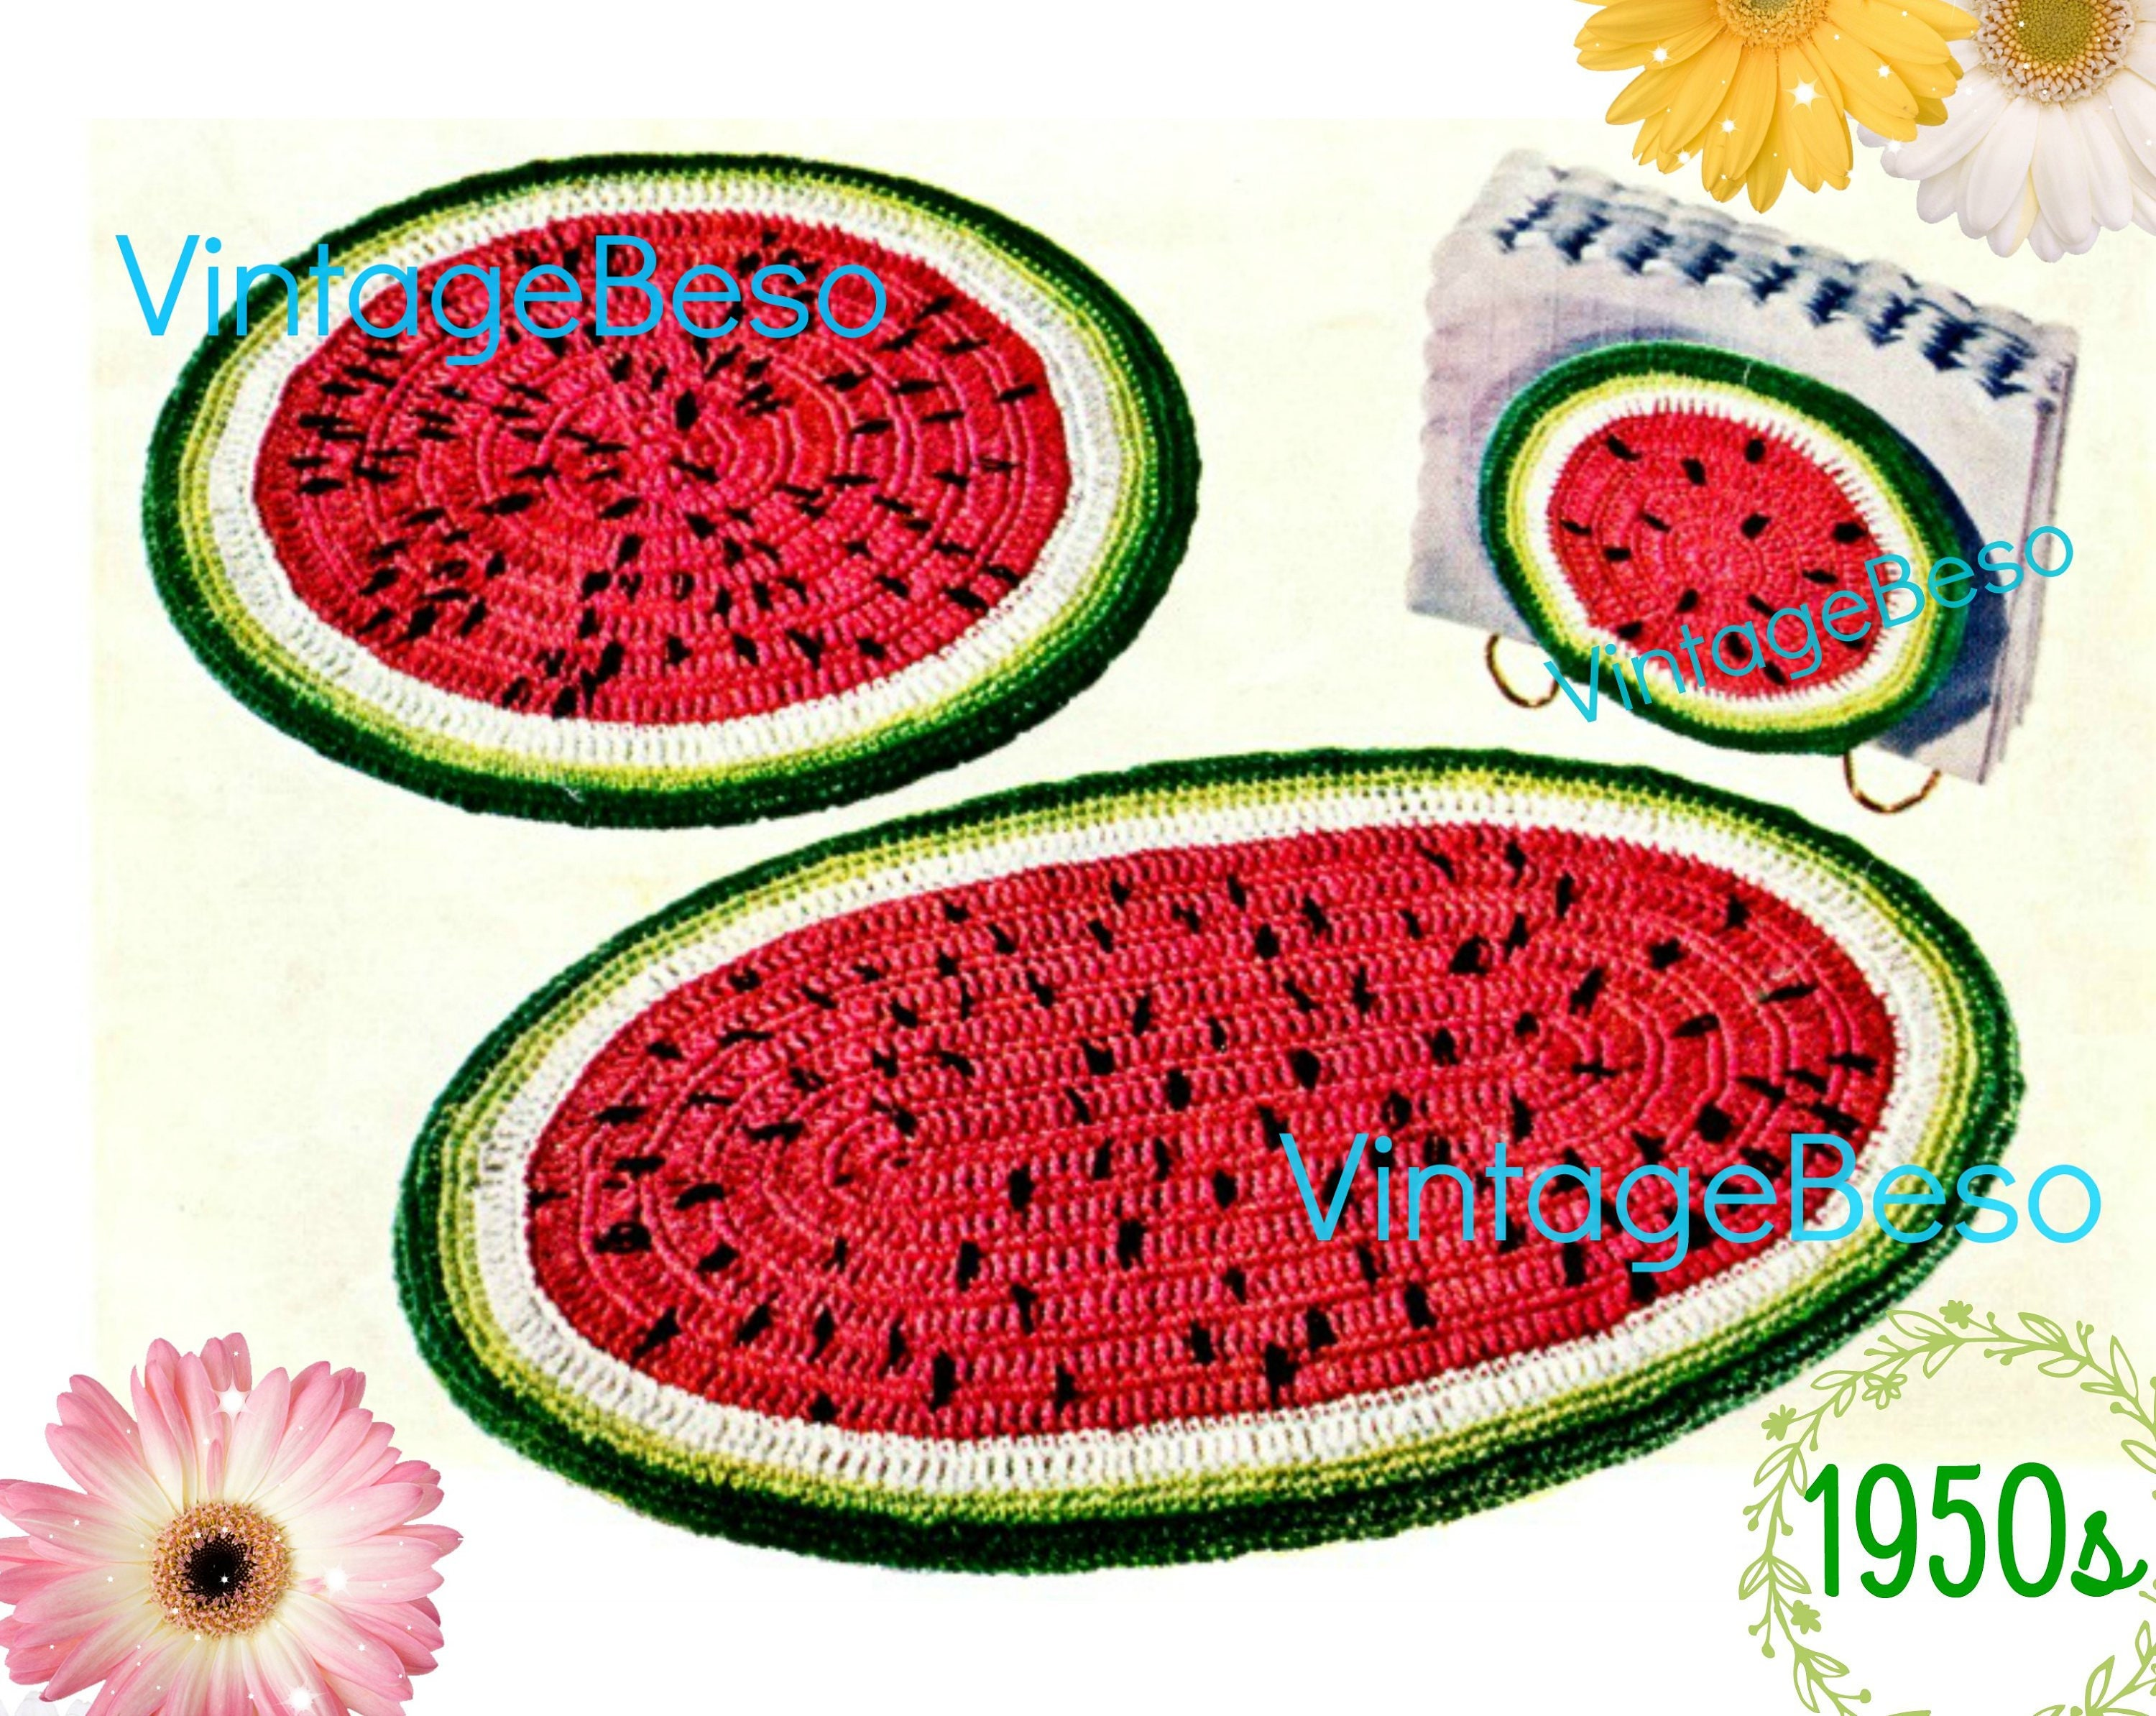 Watermelon Set Crochet Pattern Hot Plate Place Mats Napkin Holder Vintage 1950s Kitchen Gift For New Home Apt Watermarked Pdf Only